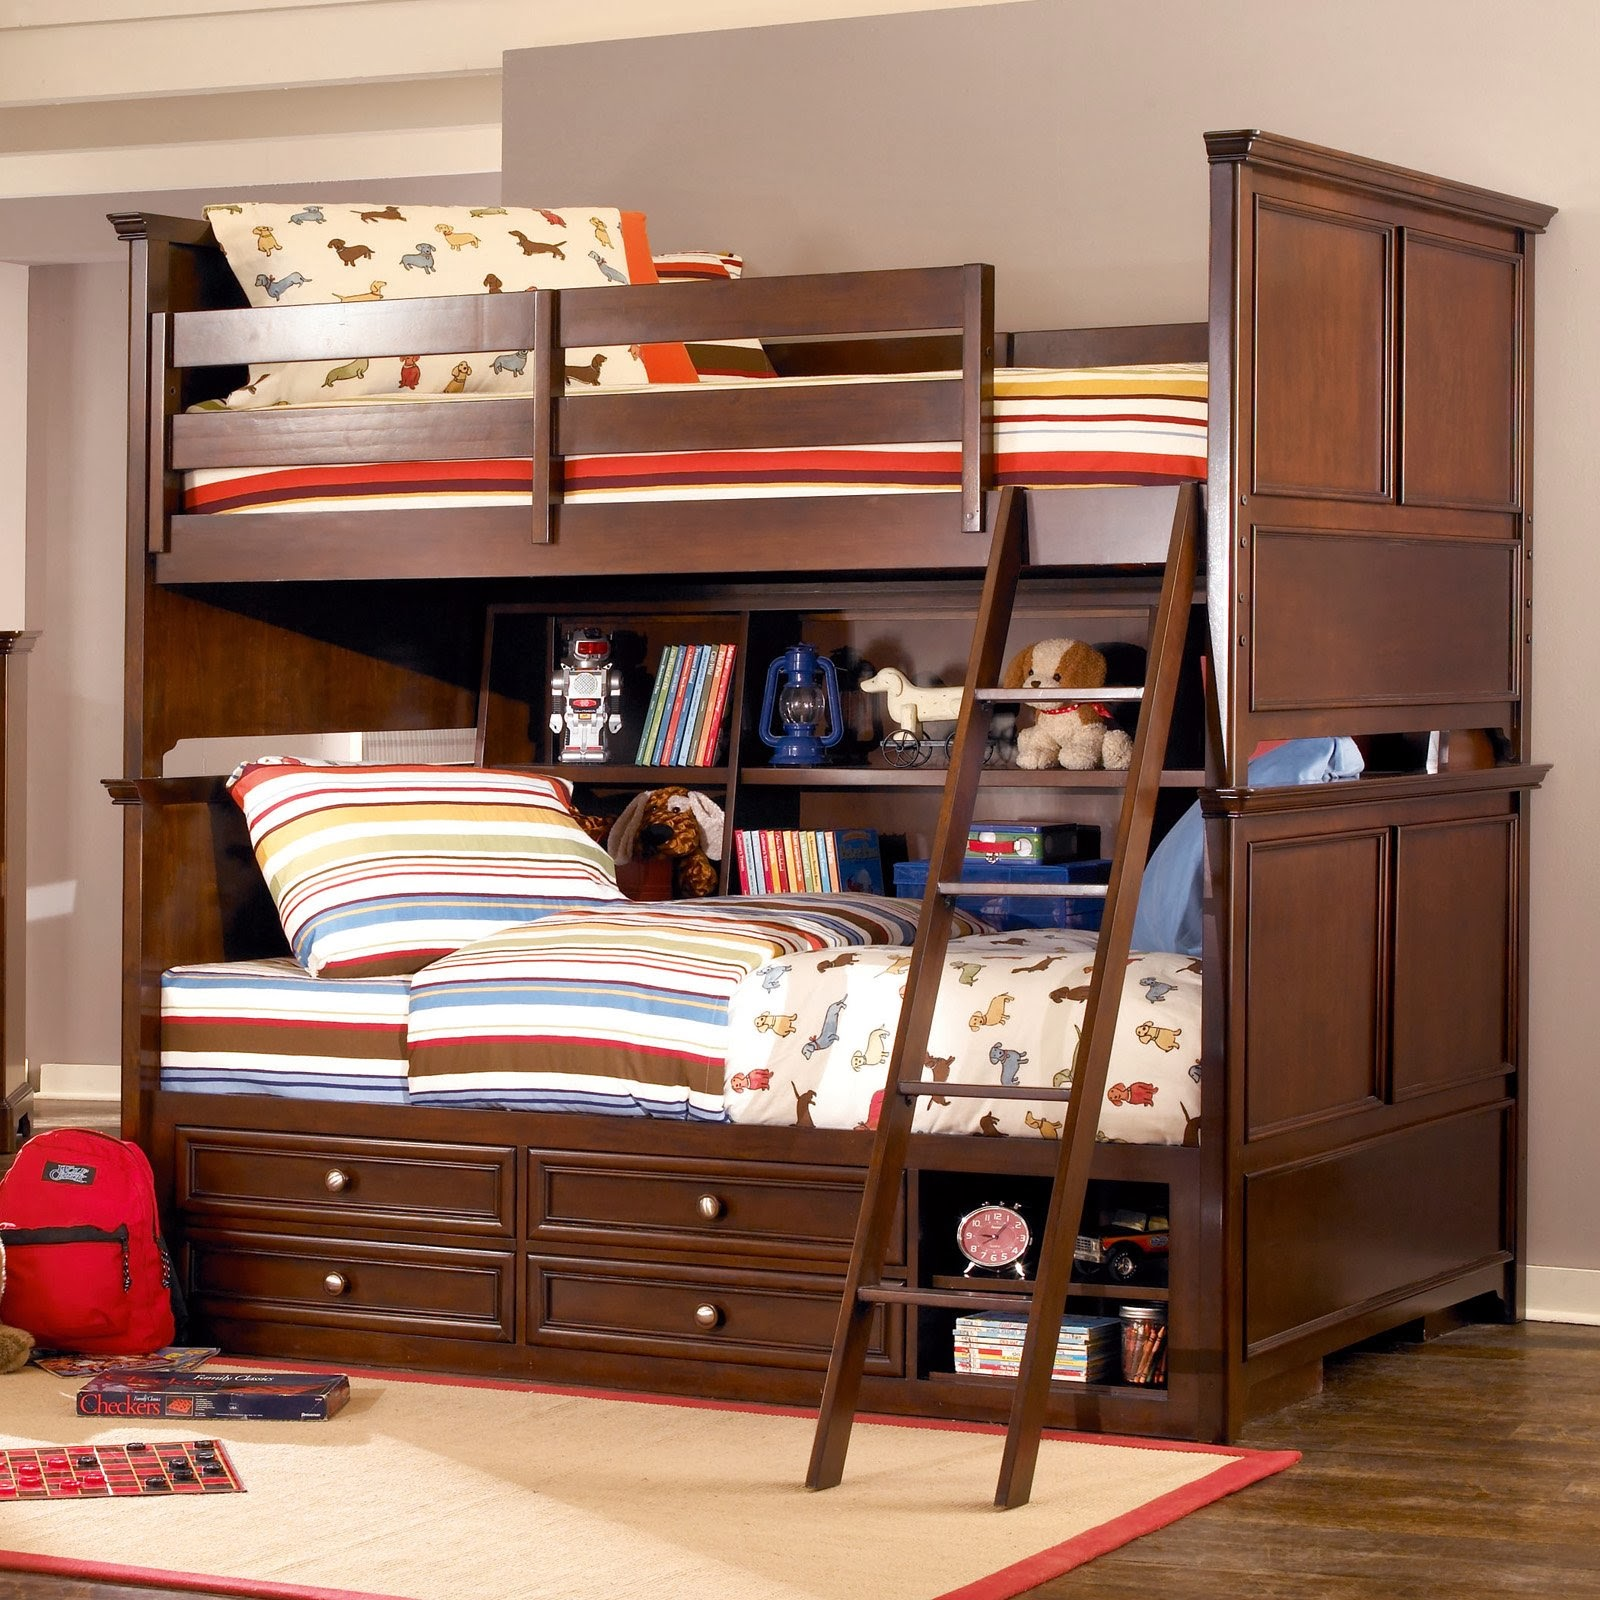 Cool Kids Bunk Beds Cool Kids Bedroom Space Saving Ideas Loft Bed And Bunk